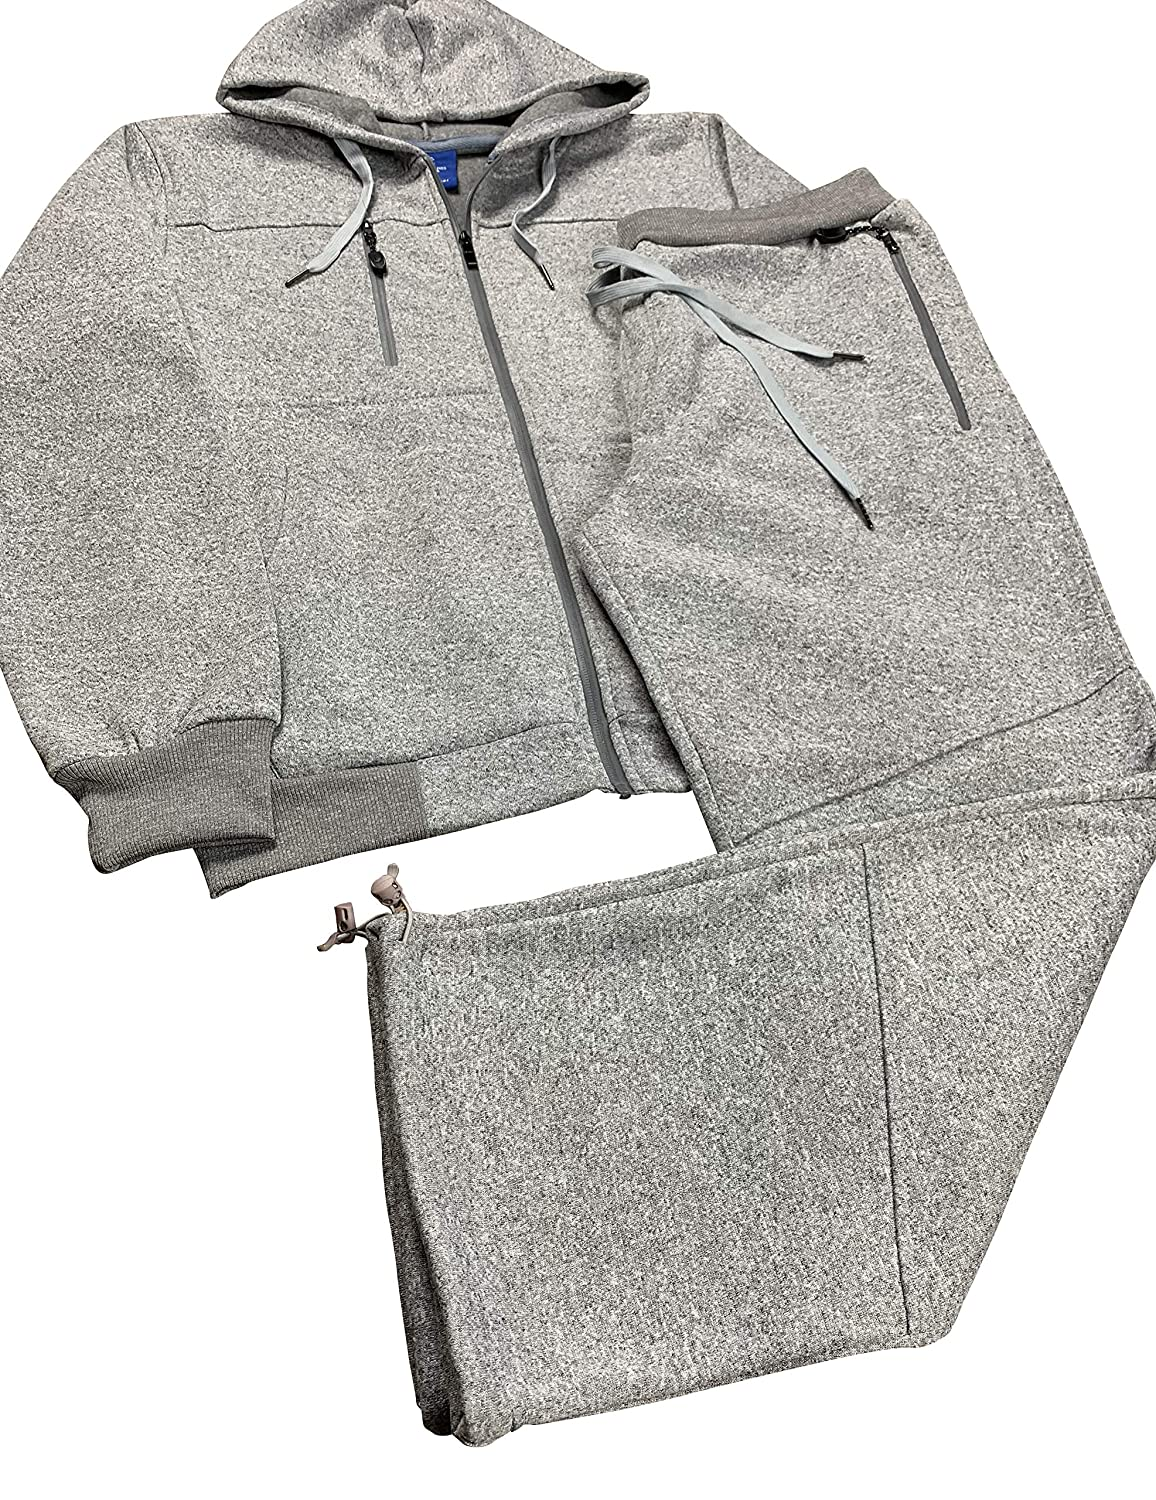 Royal Threads Canada Men/'s Tech Fleece Sweat Pants and Sweat Jacket Winter Suit